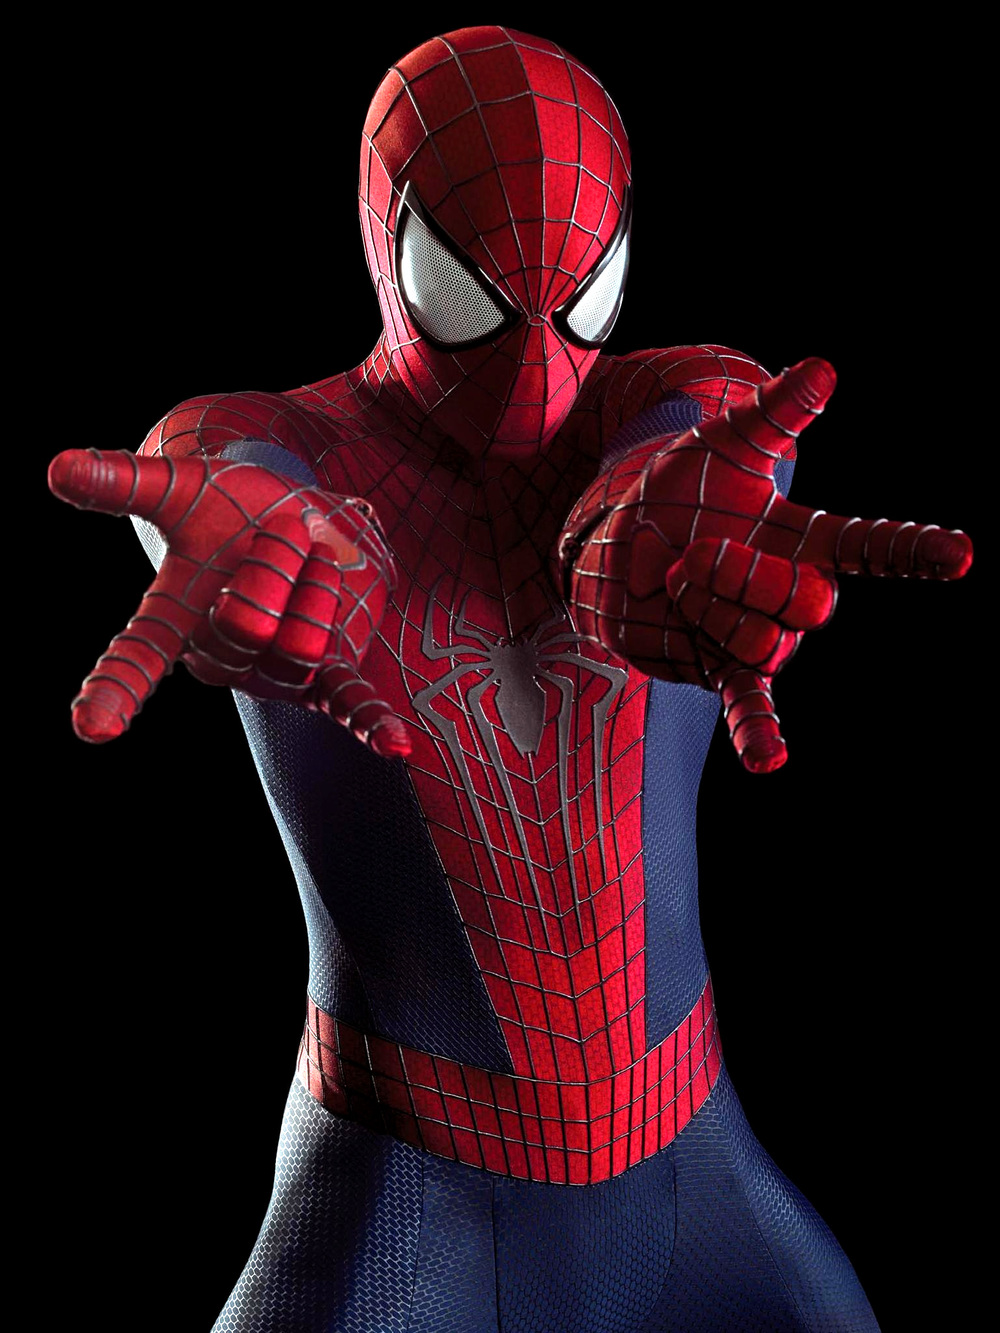 The-amazing-spider-man-2-new-details-on-spideys-suit.jpg